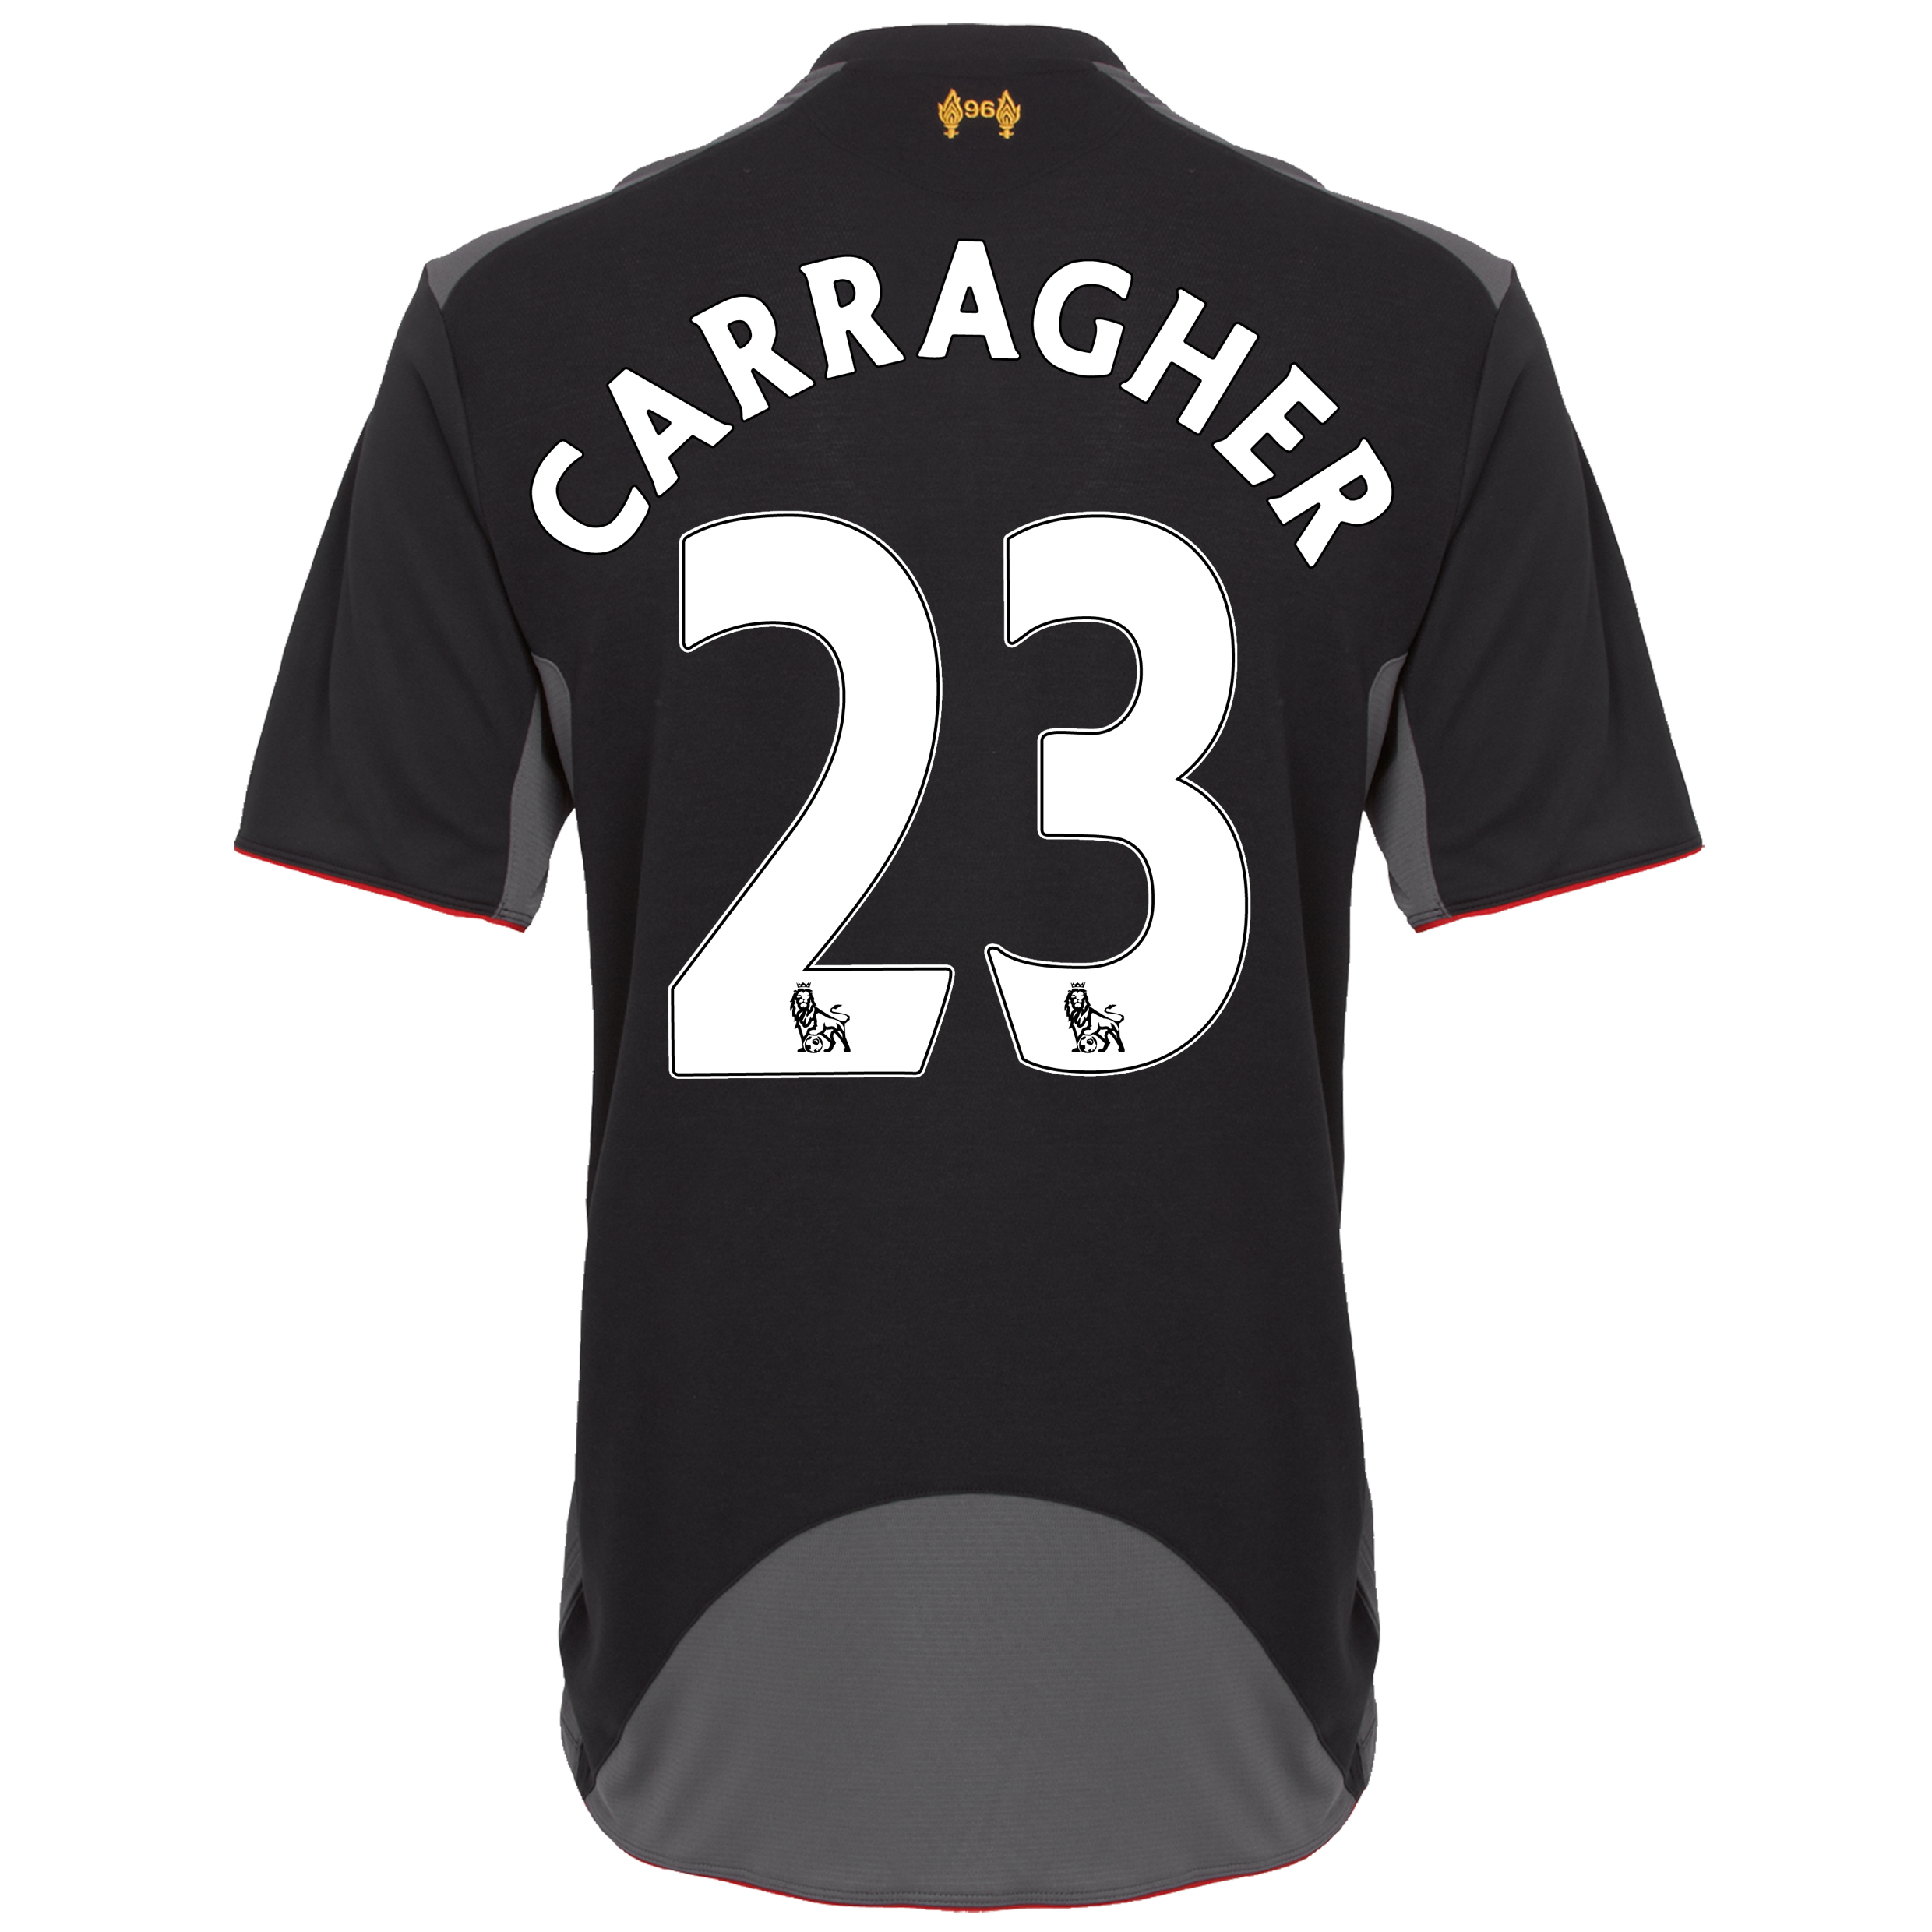 Liverpool Away Shirt 2012/13 with Carragher 23 printing